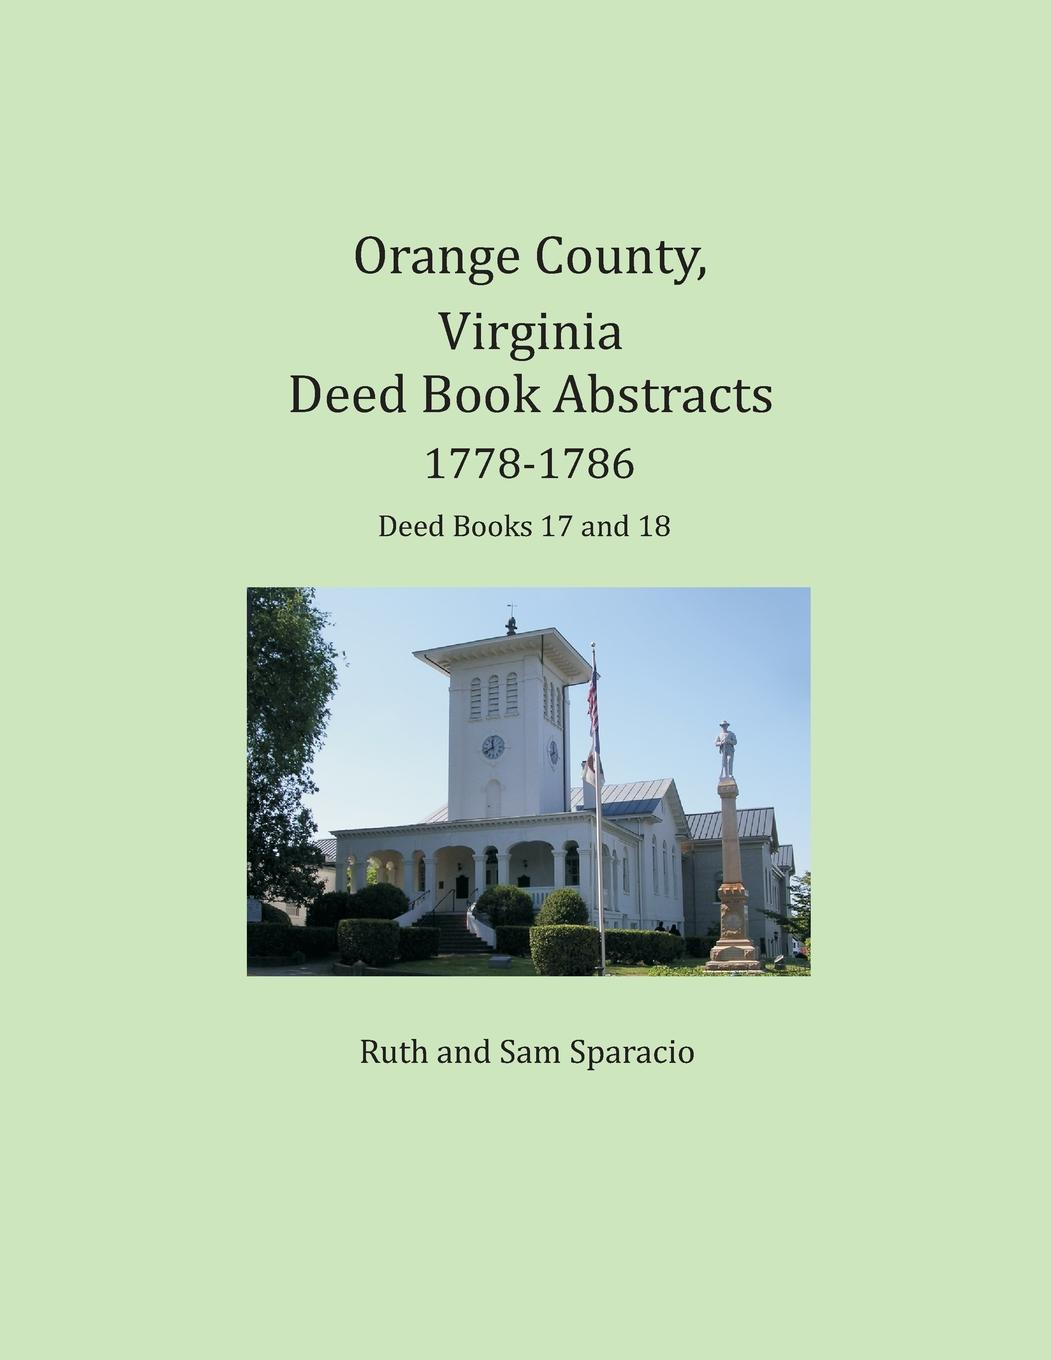 Orange County, Virginia Deed Book Abstracts, 1778-1786